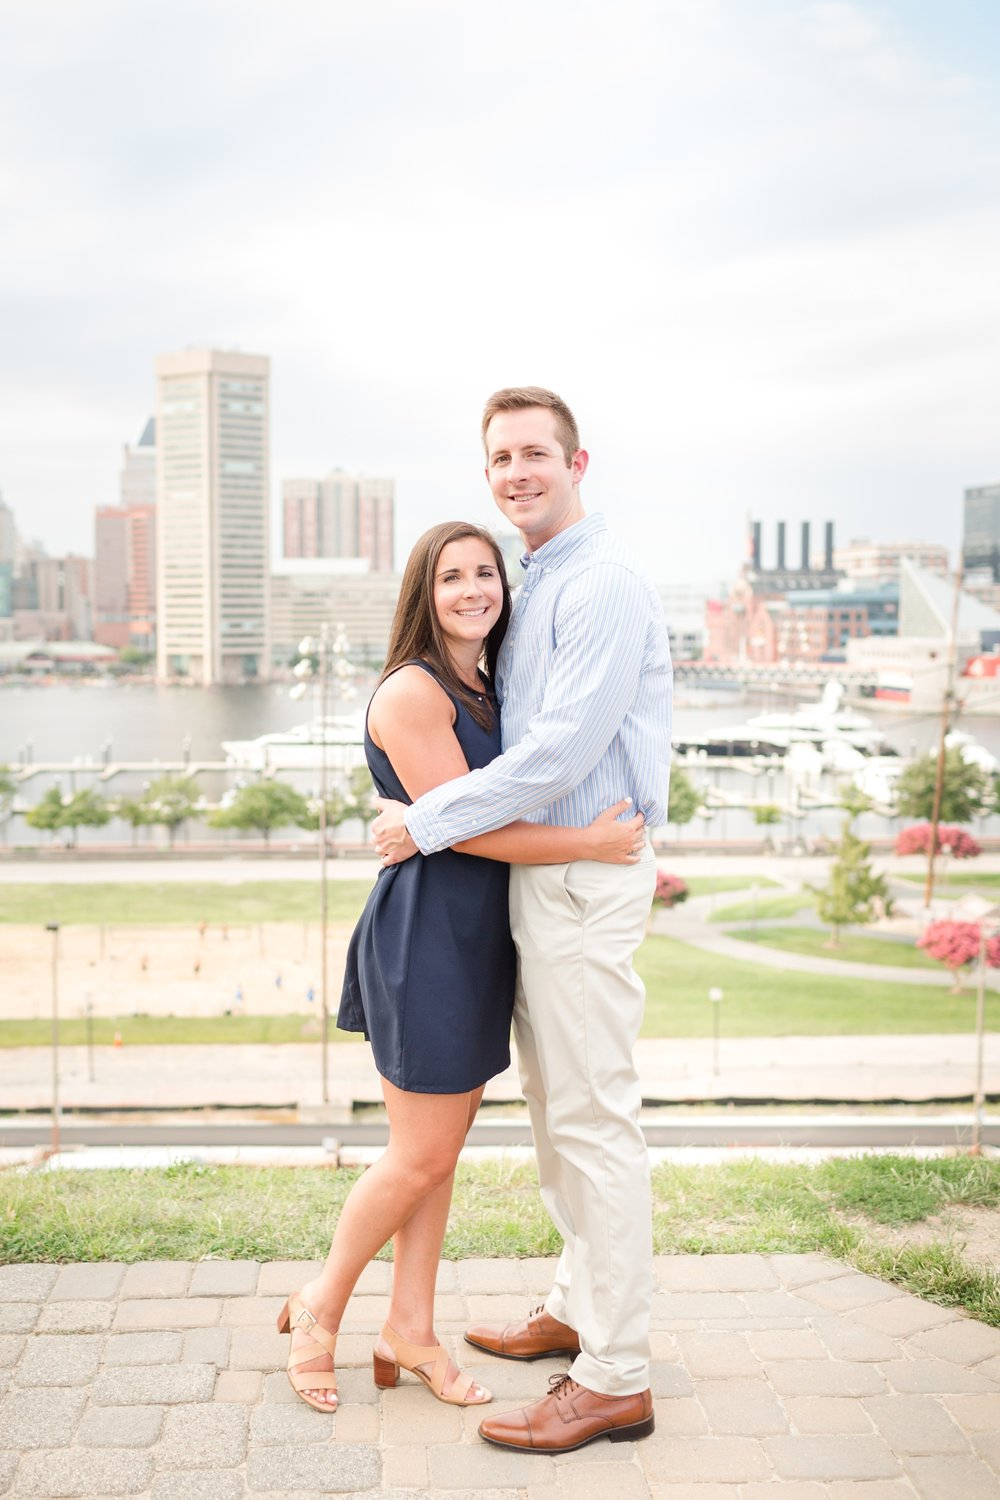 Jamie Wood & Daniel Schindler Engagement-43_Downtown-Baltimore-Maryland-engagement-photographer-anna-grace-photography-photo.jpg